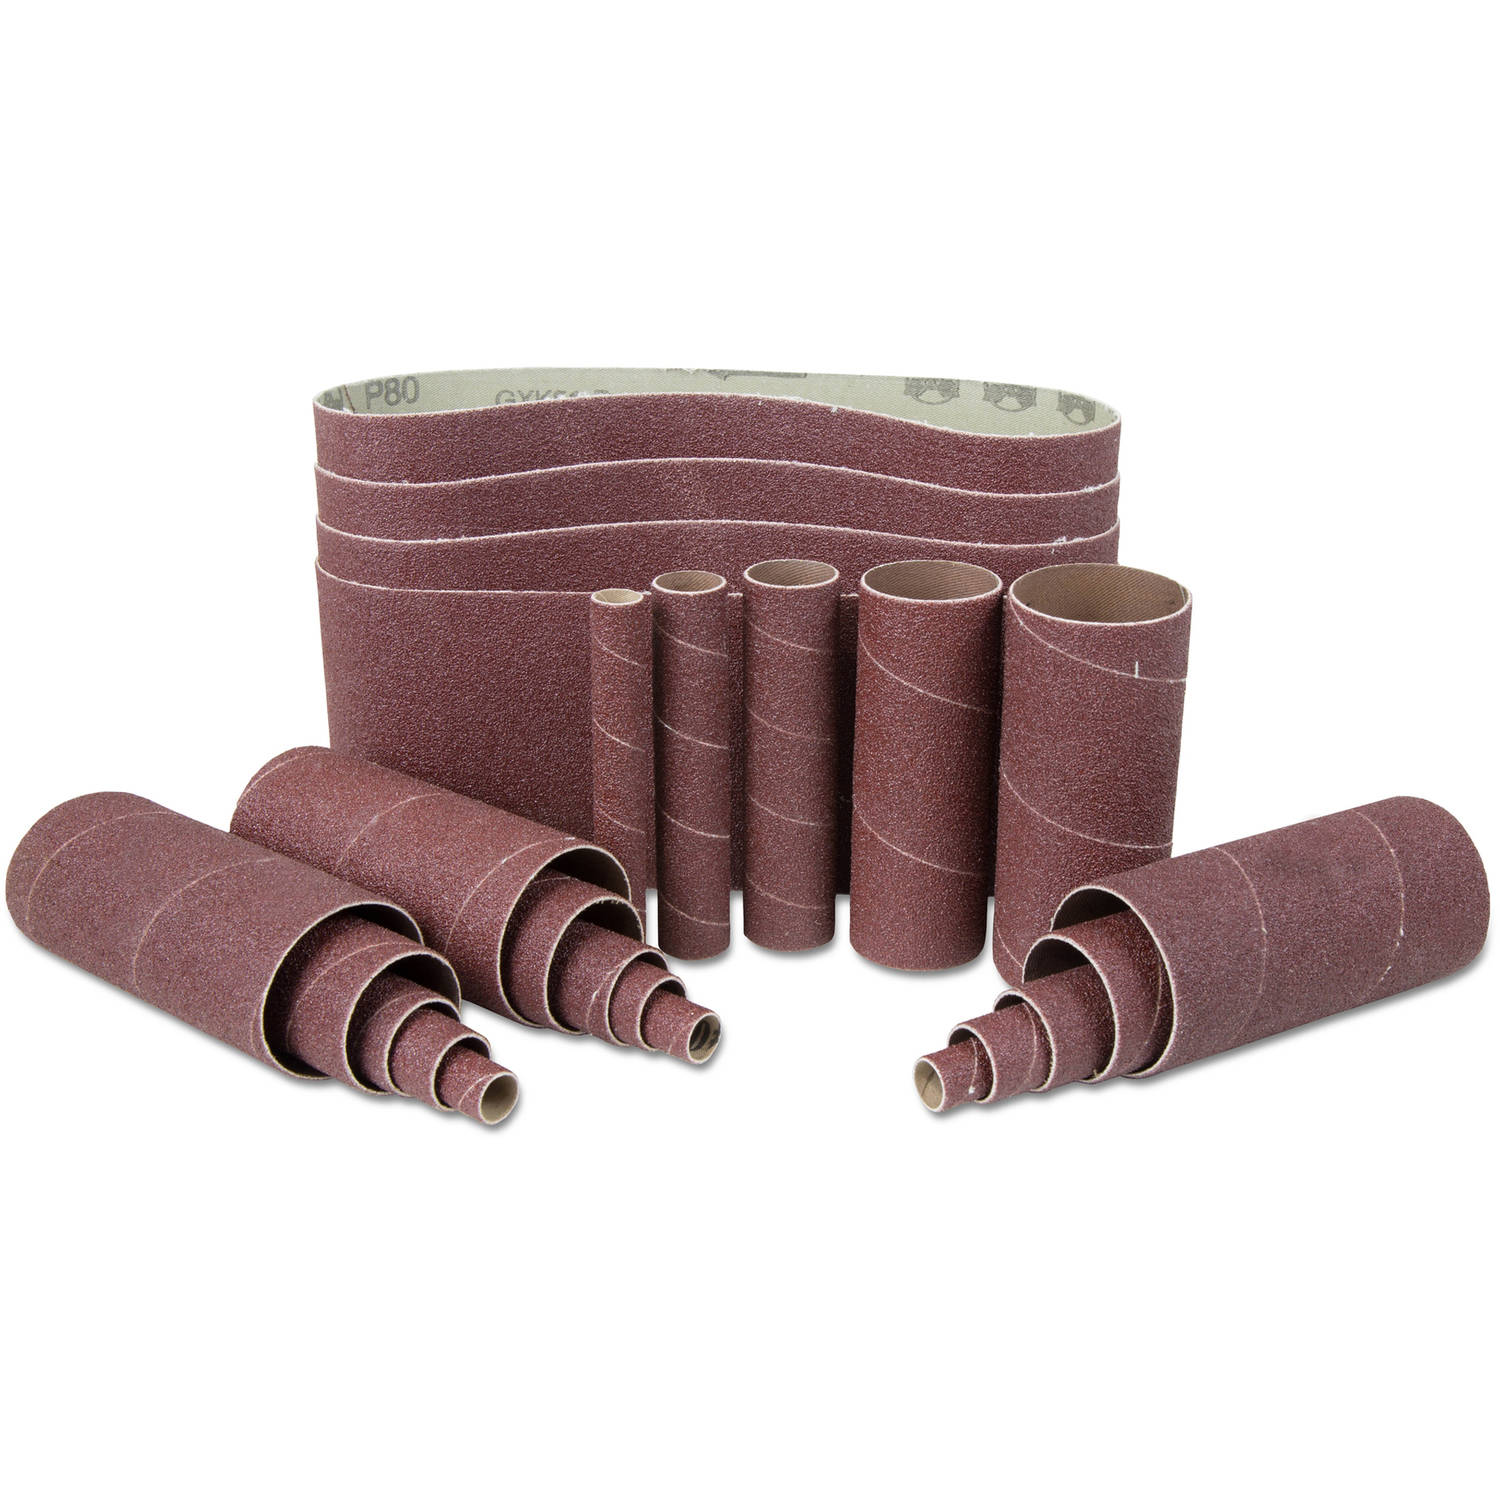 WEN 240-Grit Combination Belt and Sleeve Sandpaper Set, 24pk